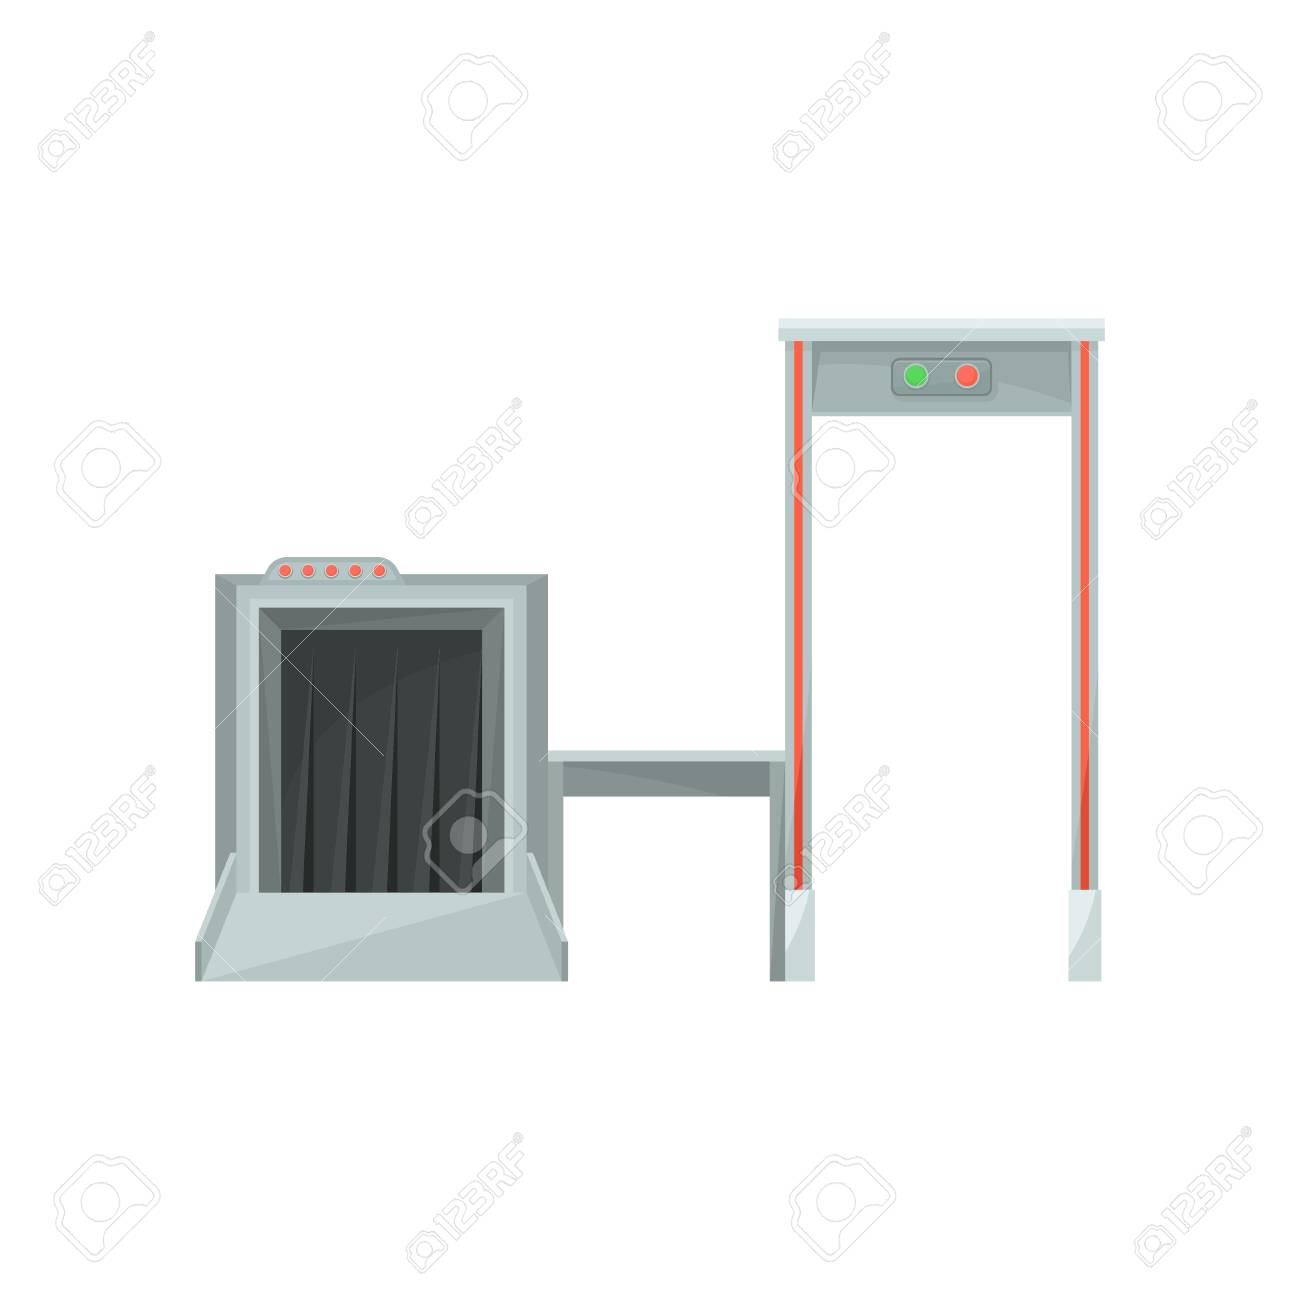 hight resolution of stock photo x ray machine for monitoring baggage and metal detector gate for checking passengers airport security system flat vector design